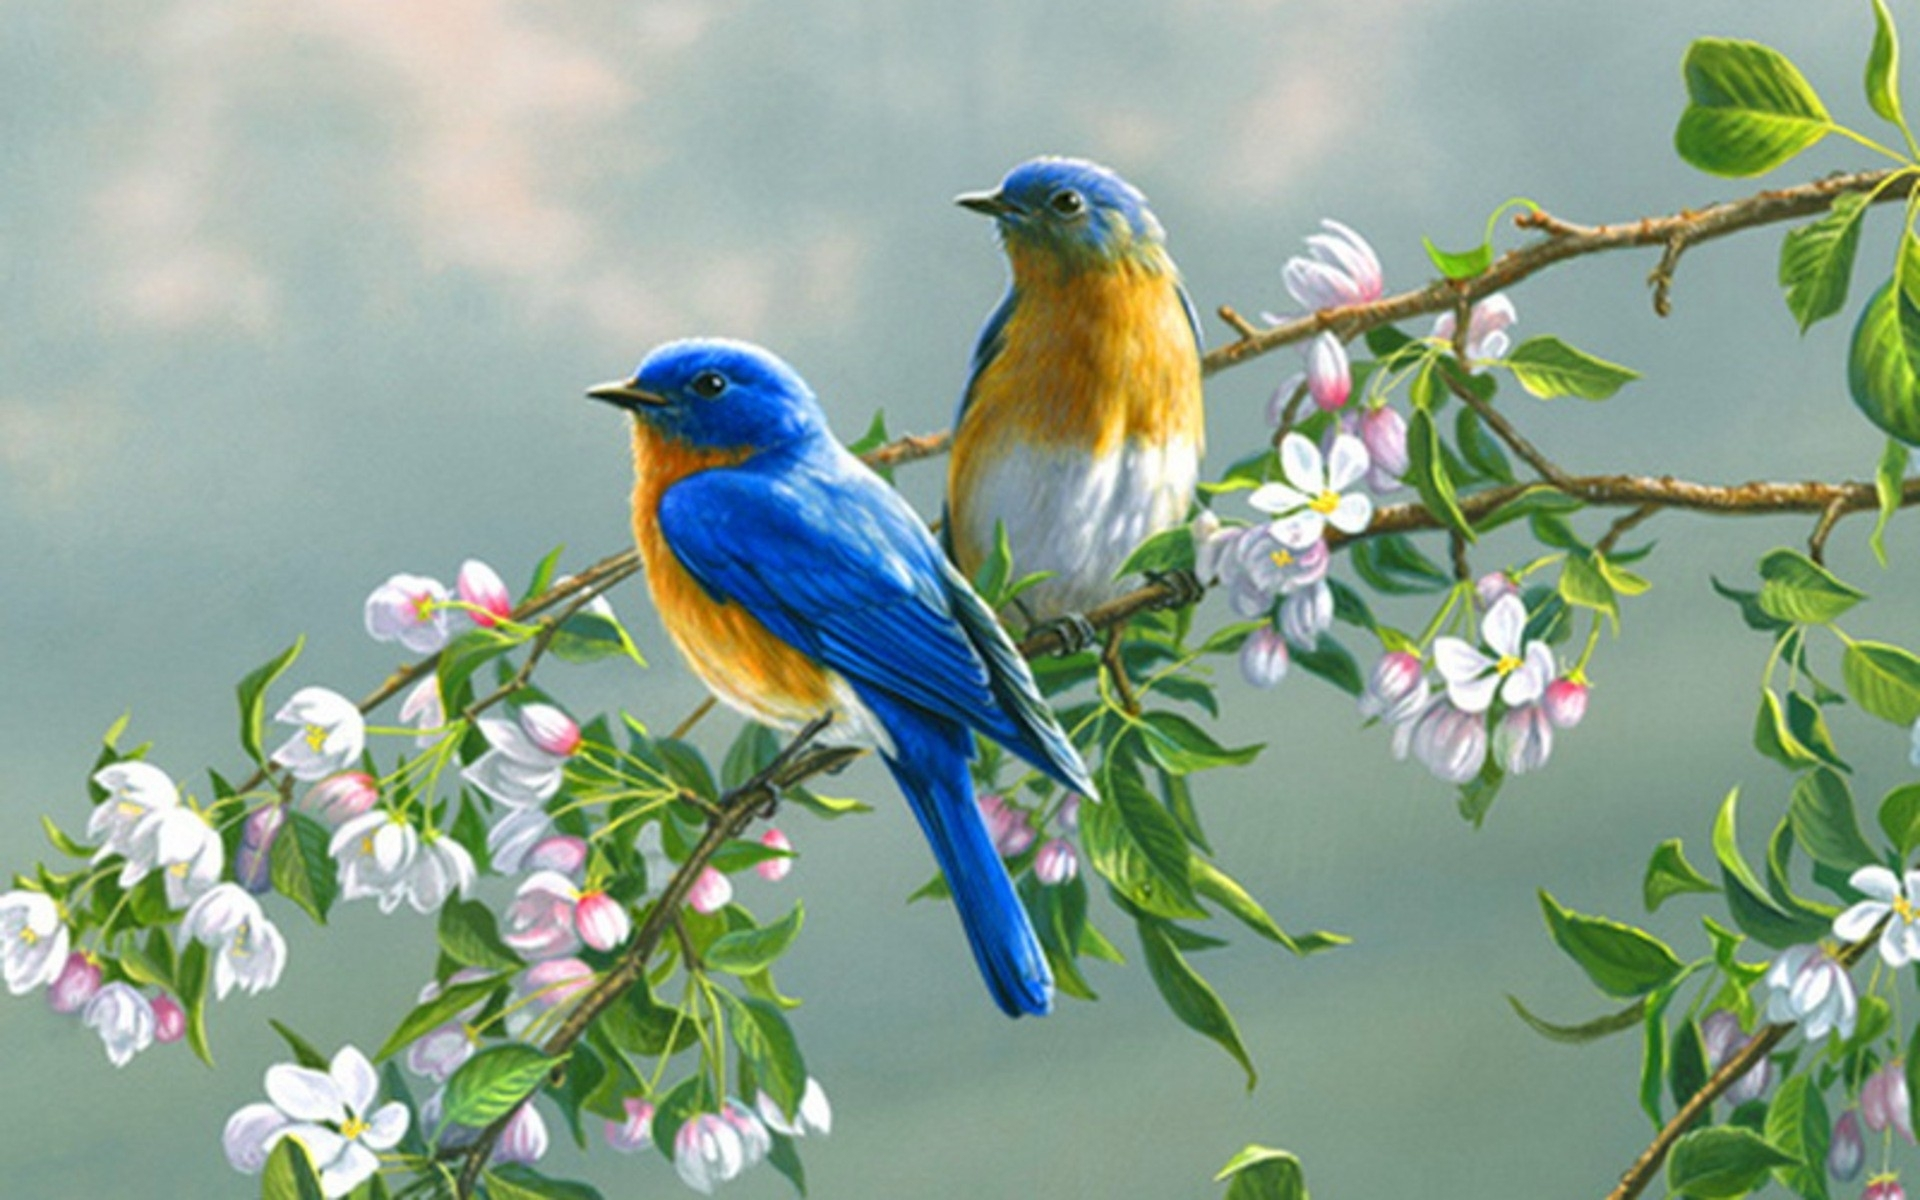 Birds Branches & Blossoms wallpapers | Birds Branches ...